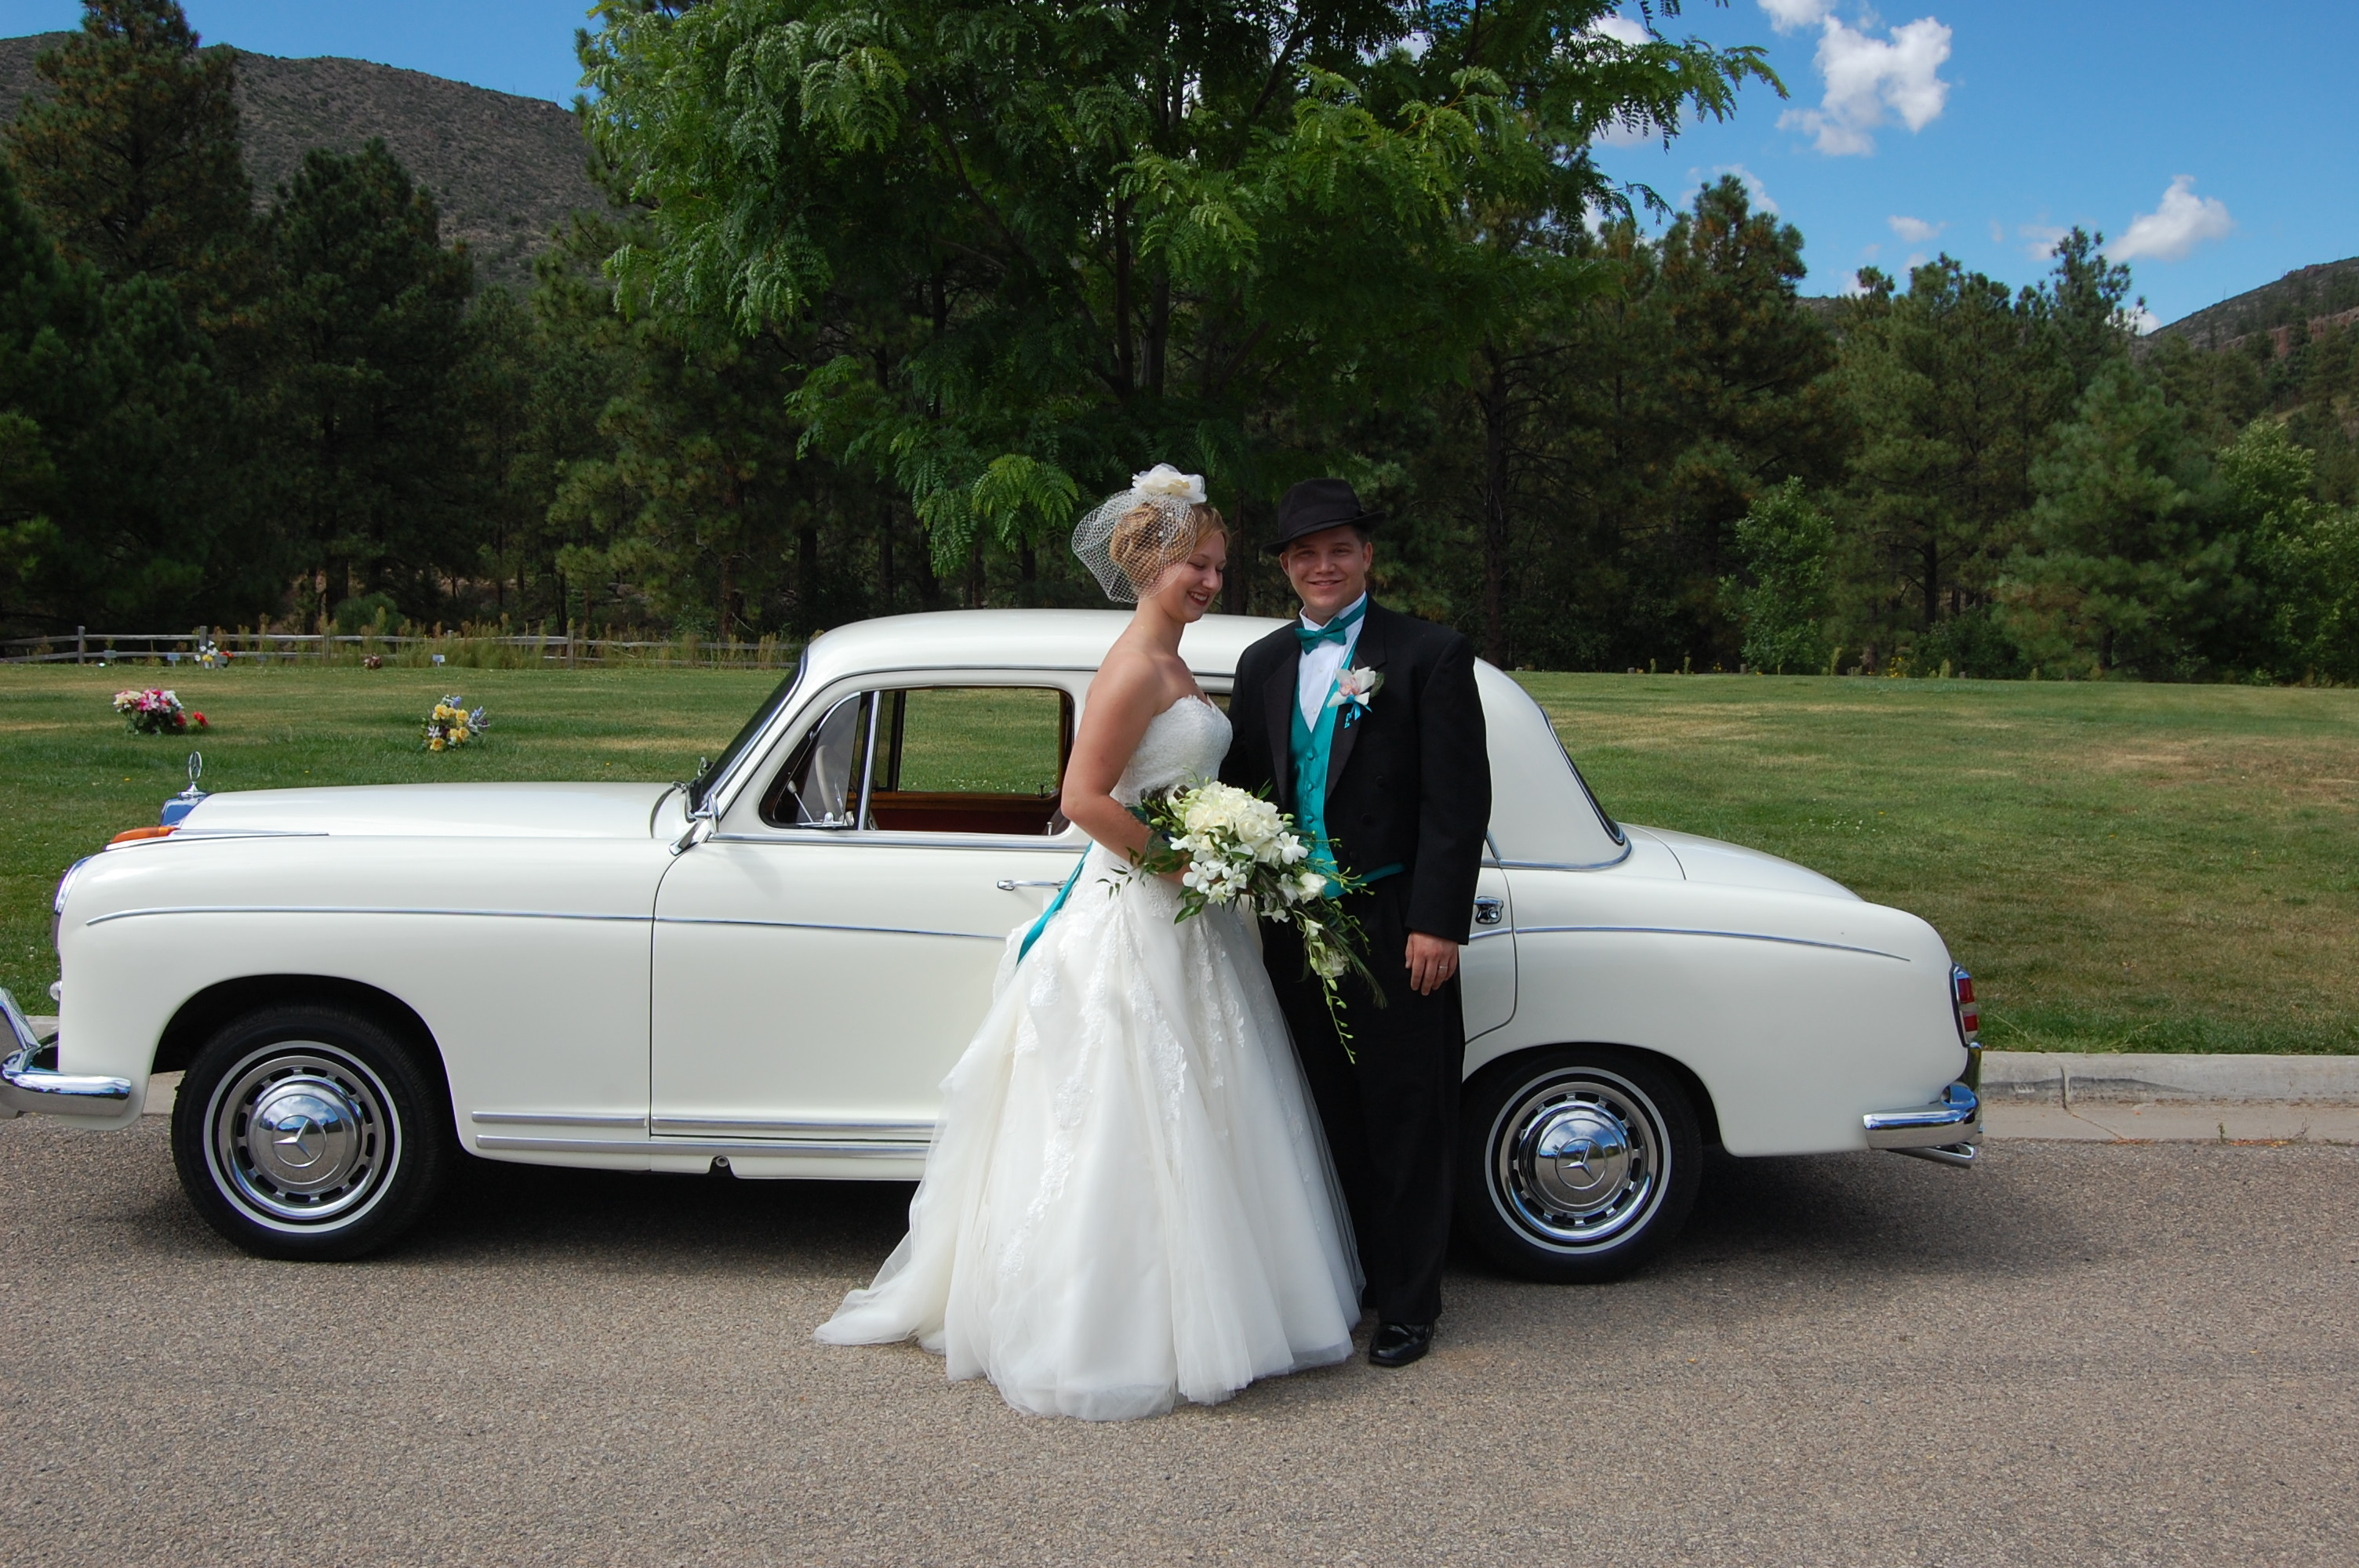 91314mercedes-wedding-shots-9-2014-008